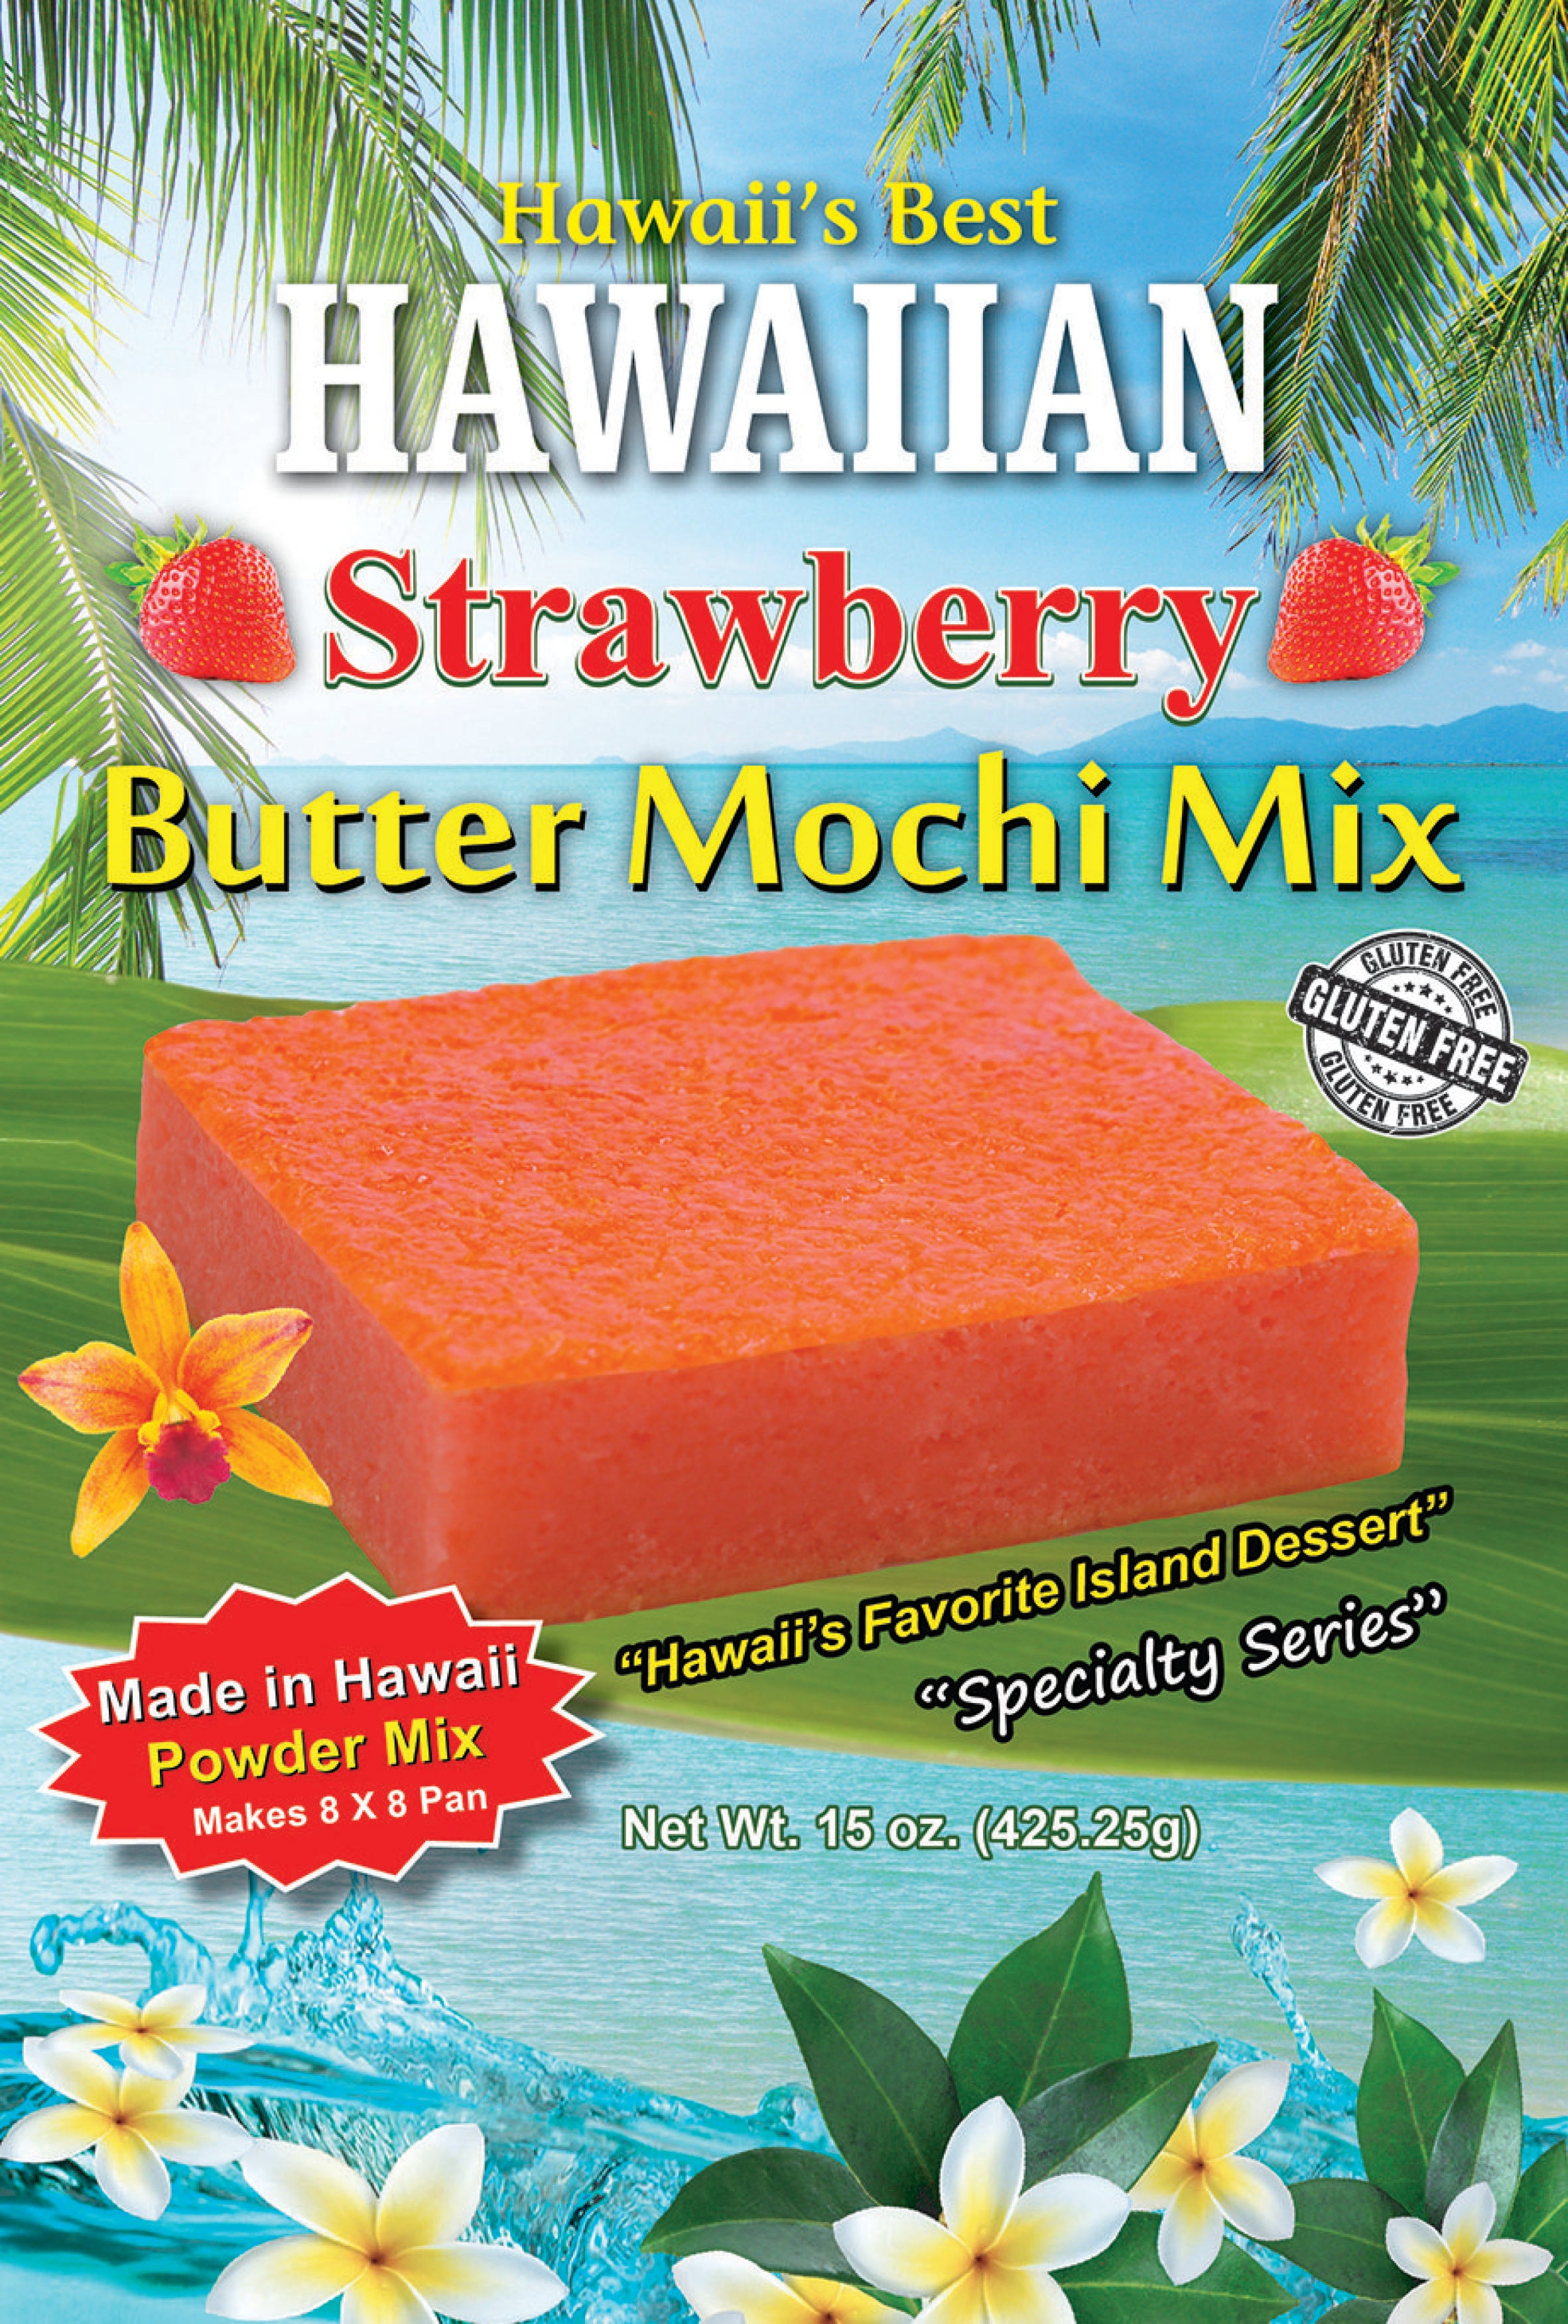 Free Shipping! (10 BAGS - EXTRA VALUE PACK, $5.49 EACH) STRAWBERRY BUTTER MOCHI MIX, SPECIALTY ITEM, LIMITED INVENTORY